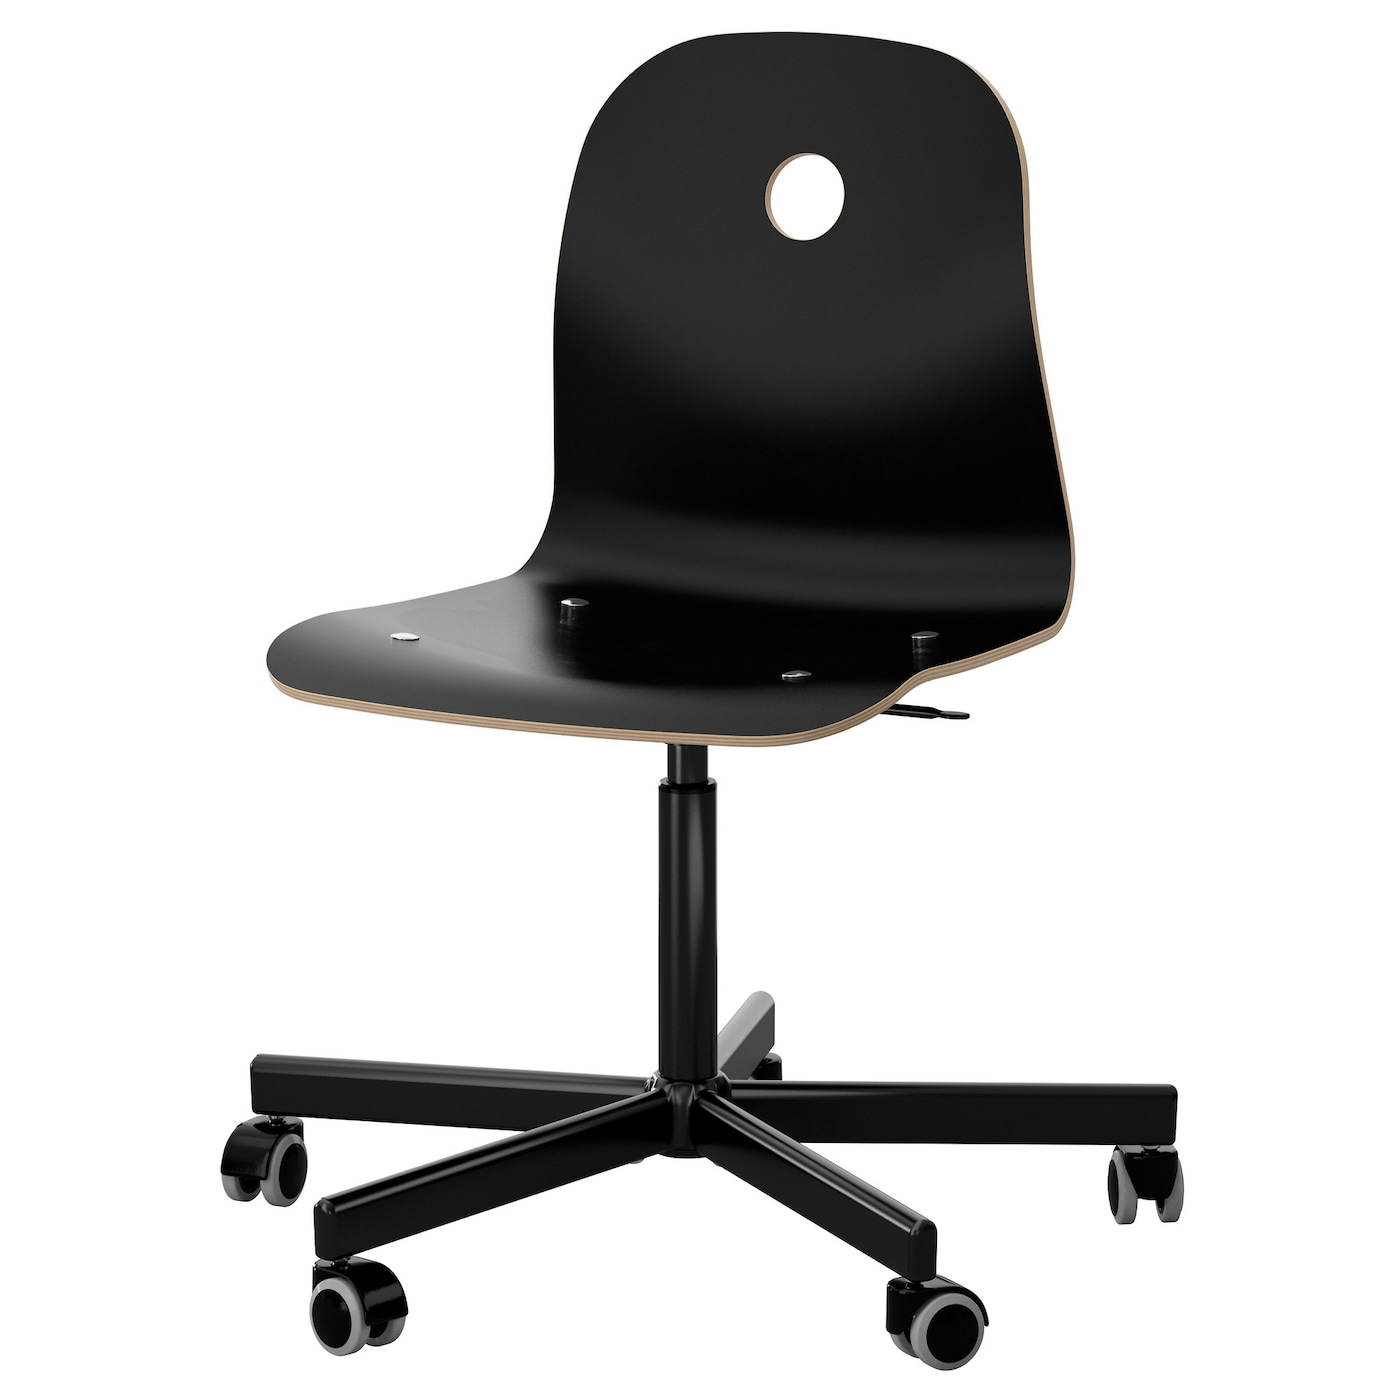 Ikea Leksvik Kinderbett Preis ~ IKEA VÅGSBERG SPORREN swivel chair You sit comfortably since the